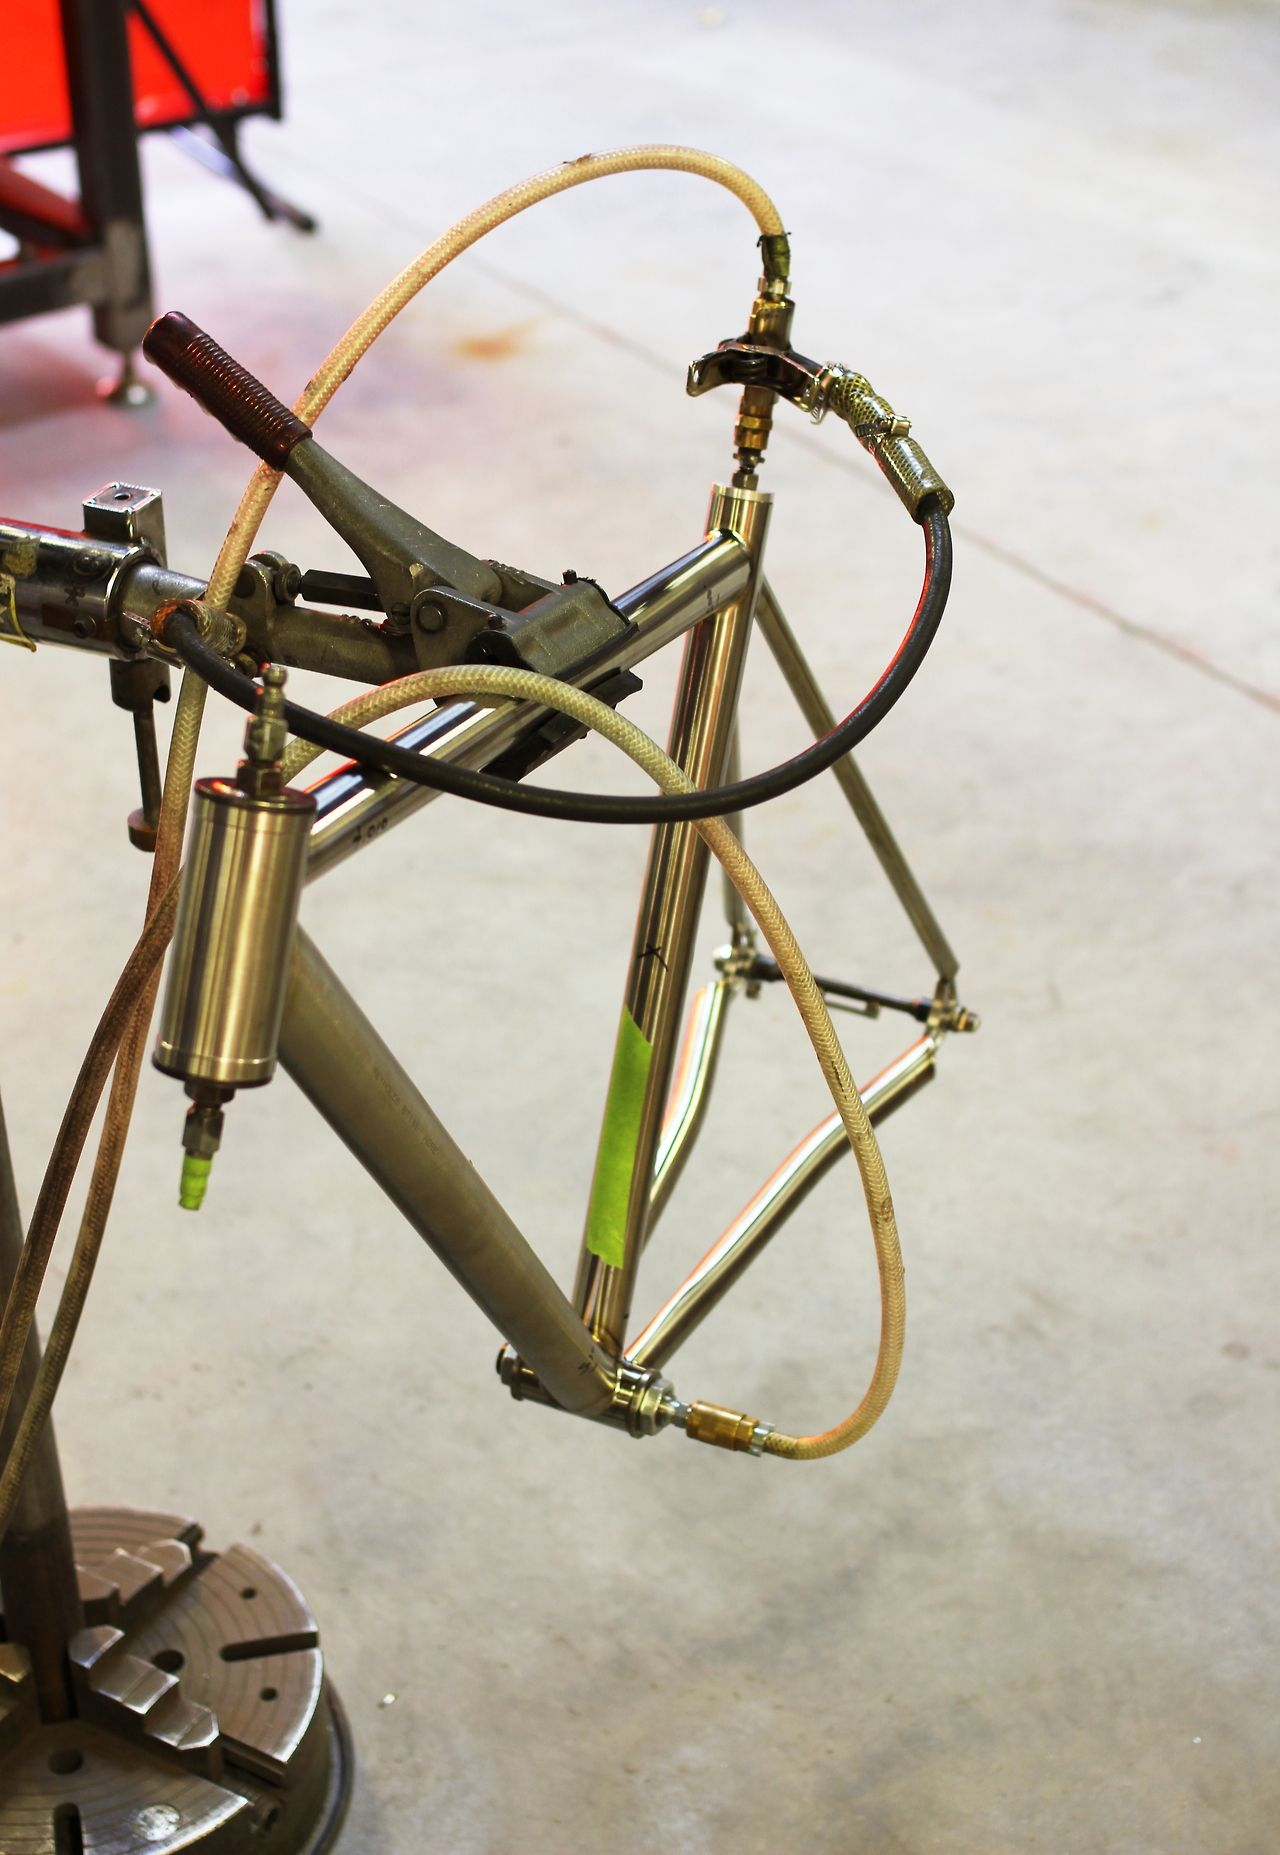 Firefly Bicycles | bicycles | Pinterest | Fireflies, Bicycling and ...